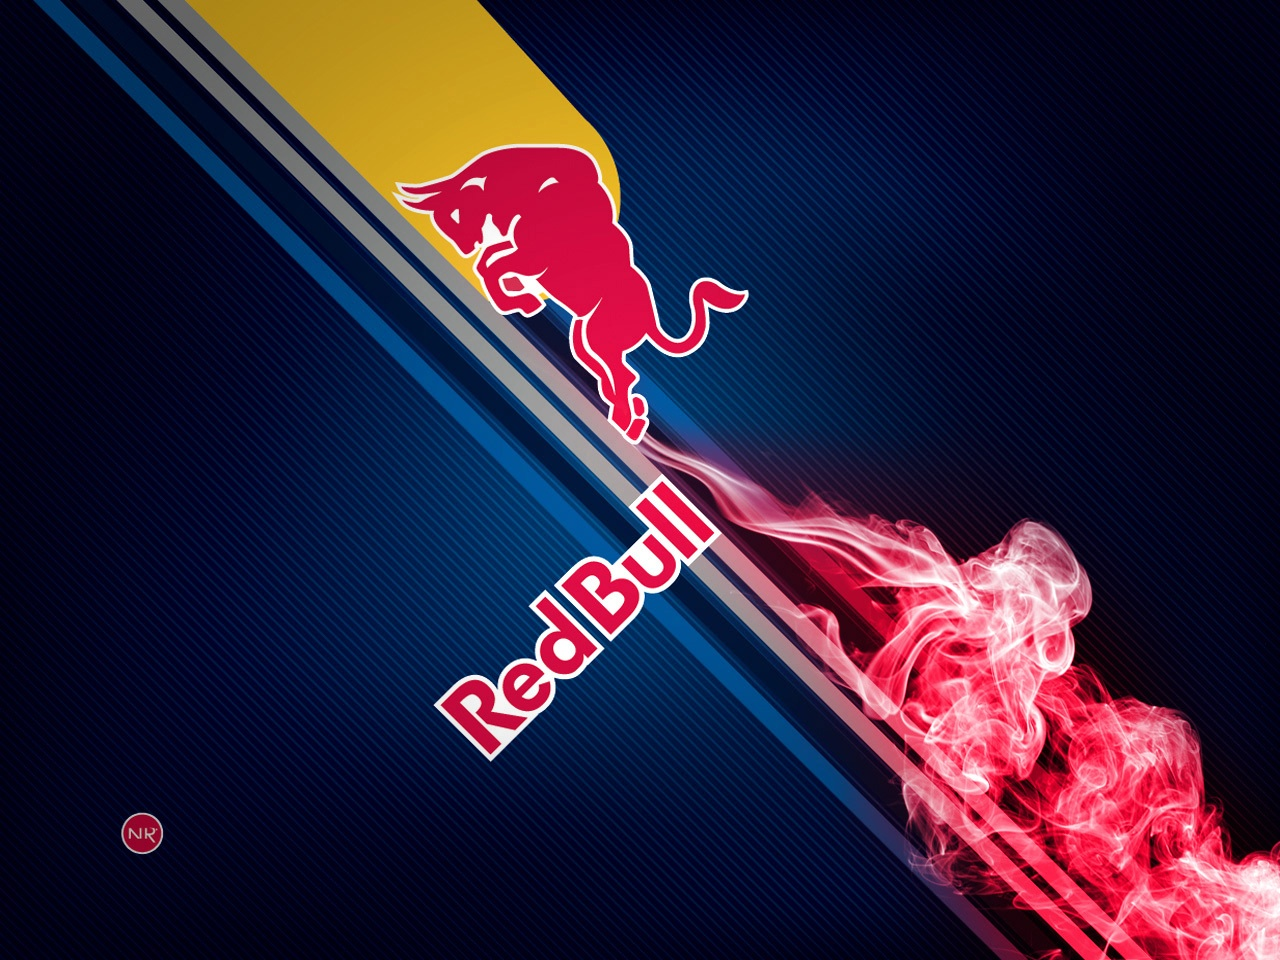 Free Download Red Bull Sports Logos Wallpaper 1280x960 For